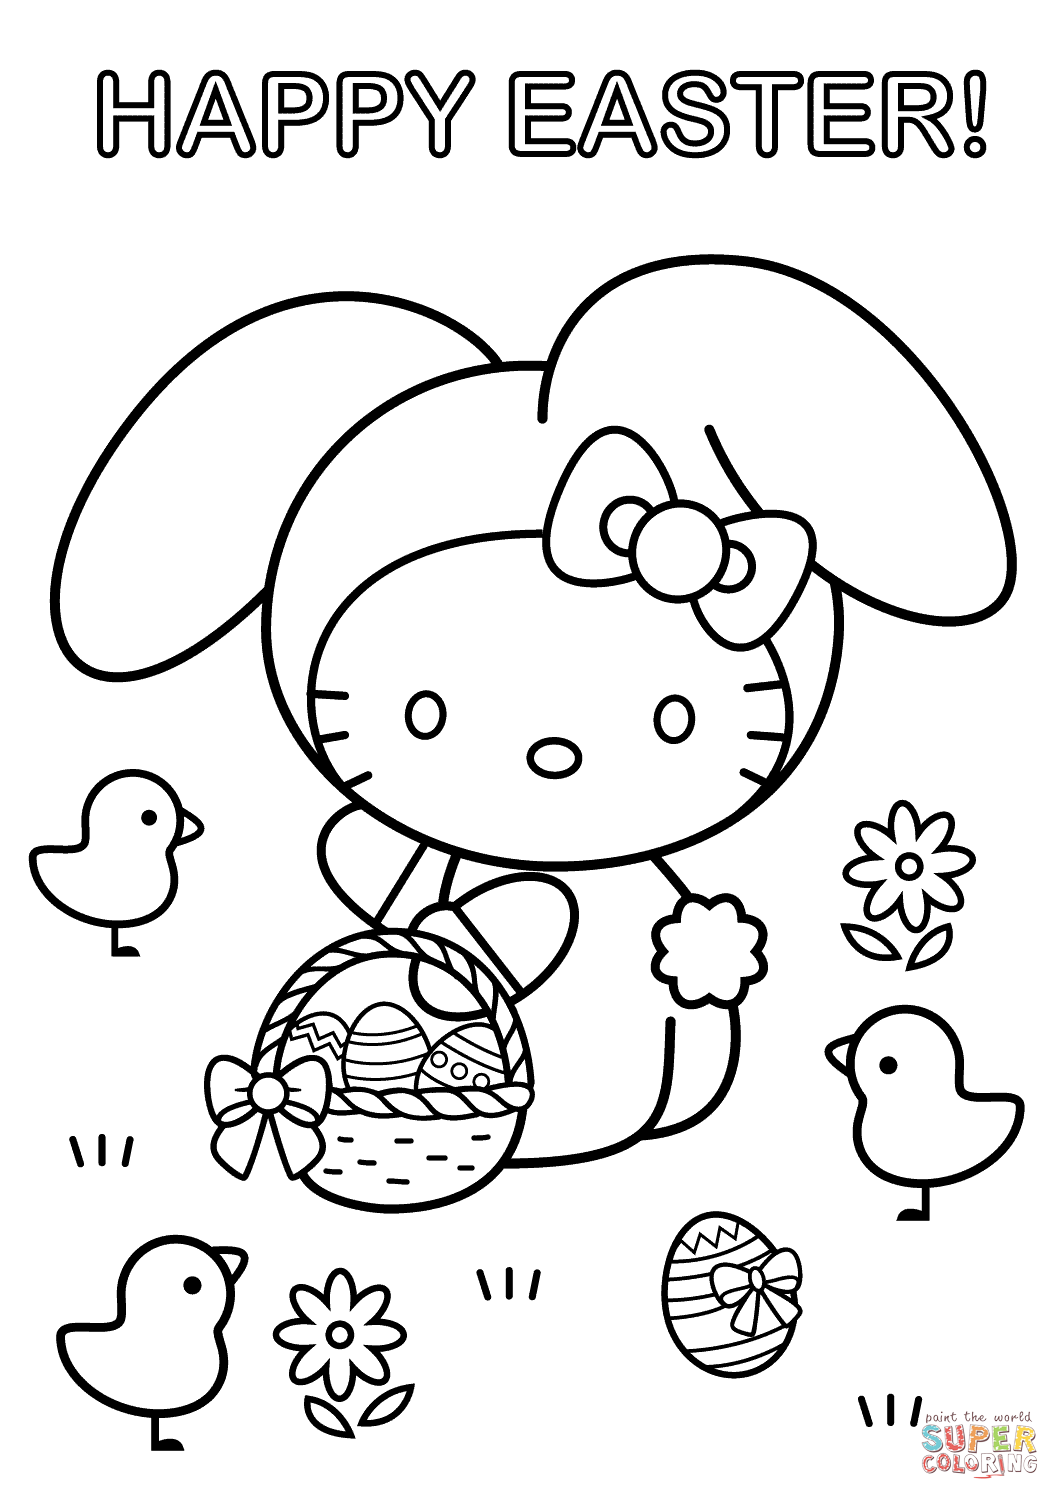 easter coloring sheets fun and free easter colouring pages for kids to enjoy sheets coloring easter